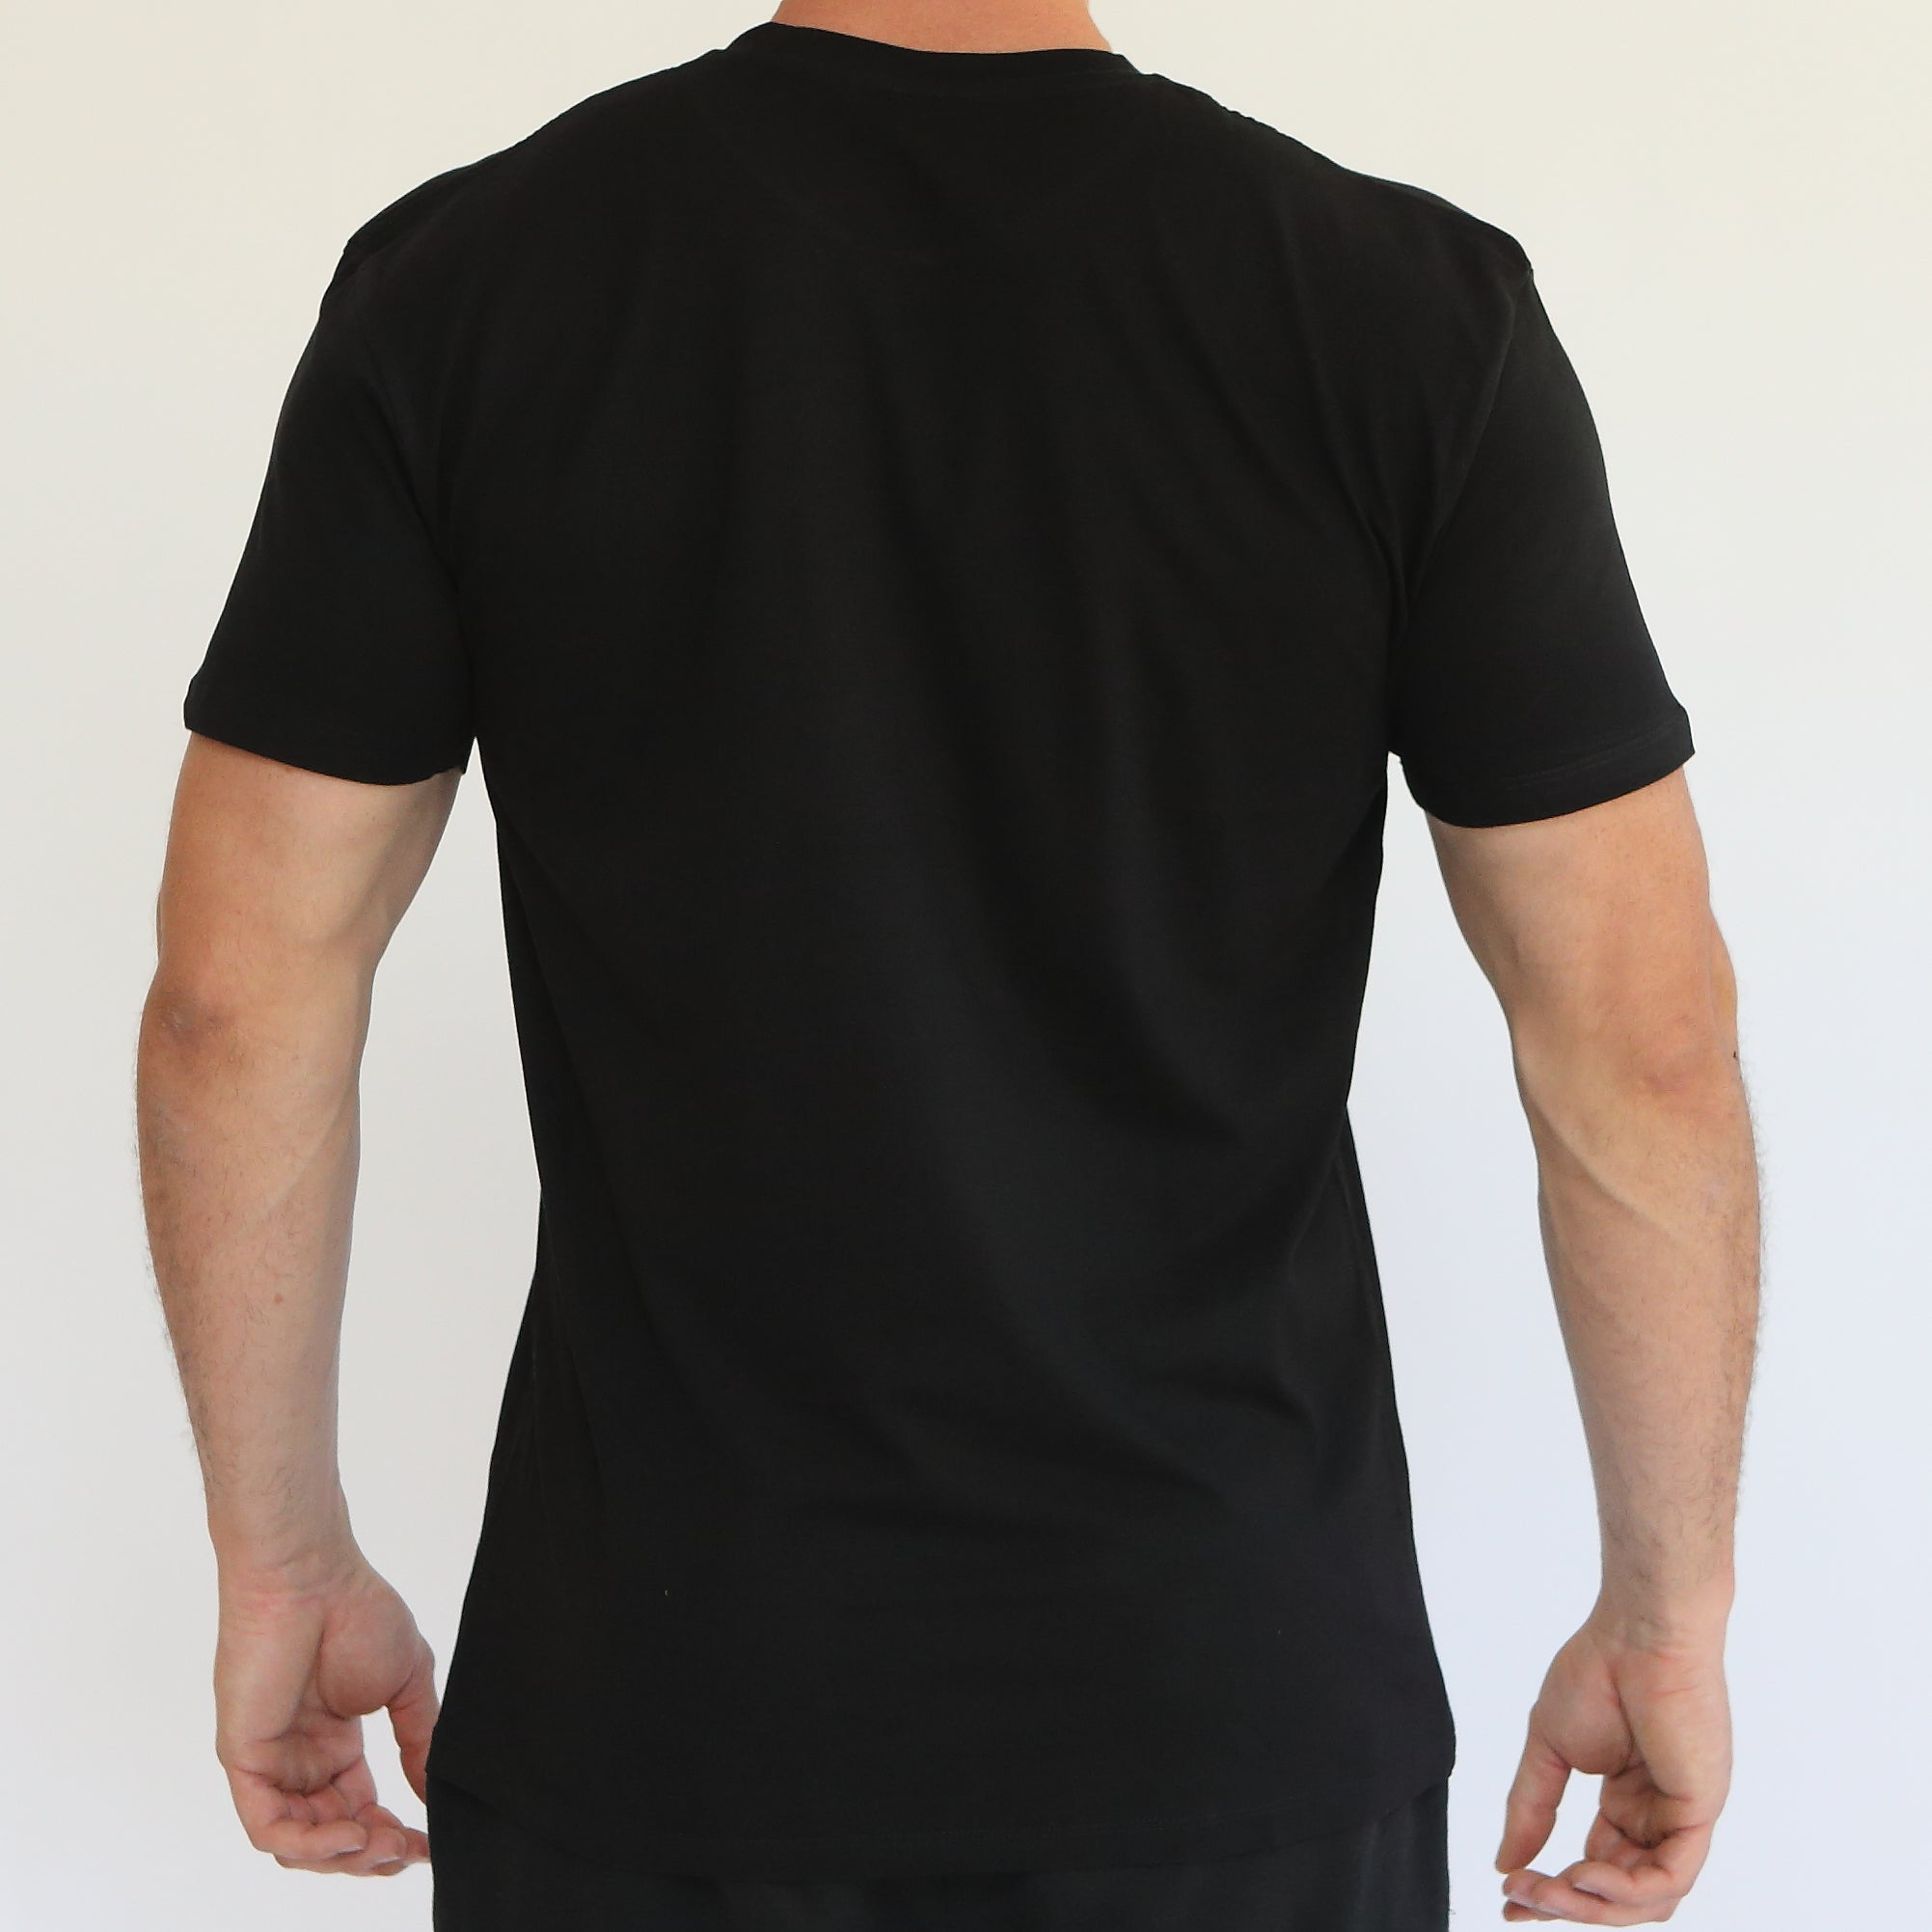 Staple FC Tee - Black